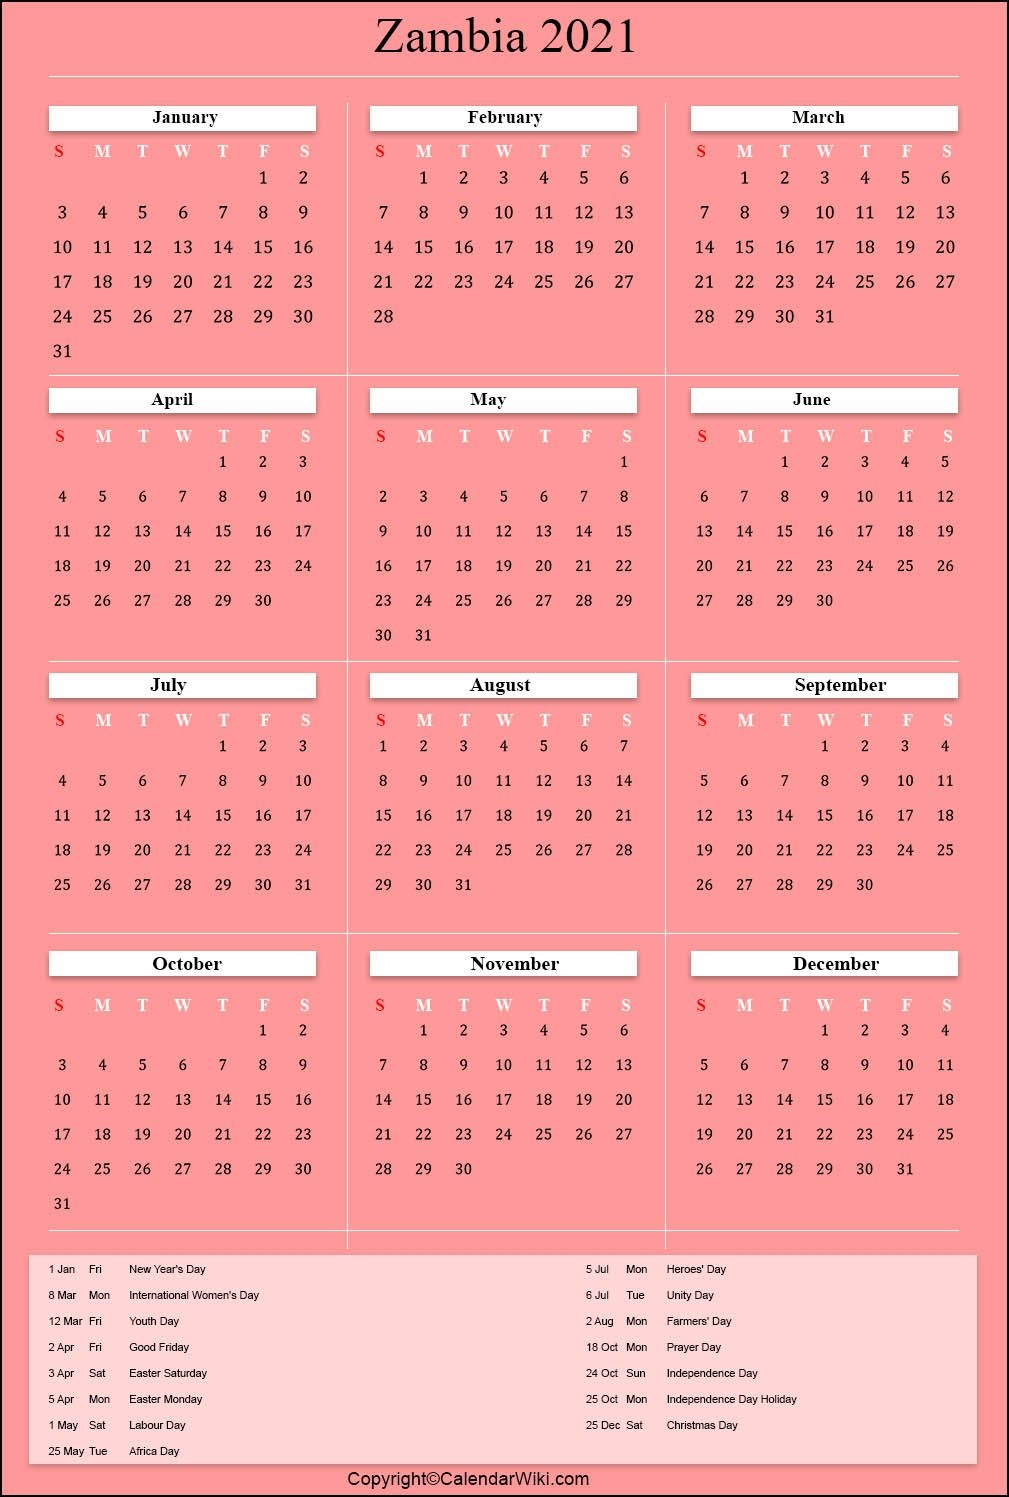 printable zambia calendar 2021 with holidays [public holidays]